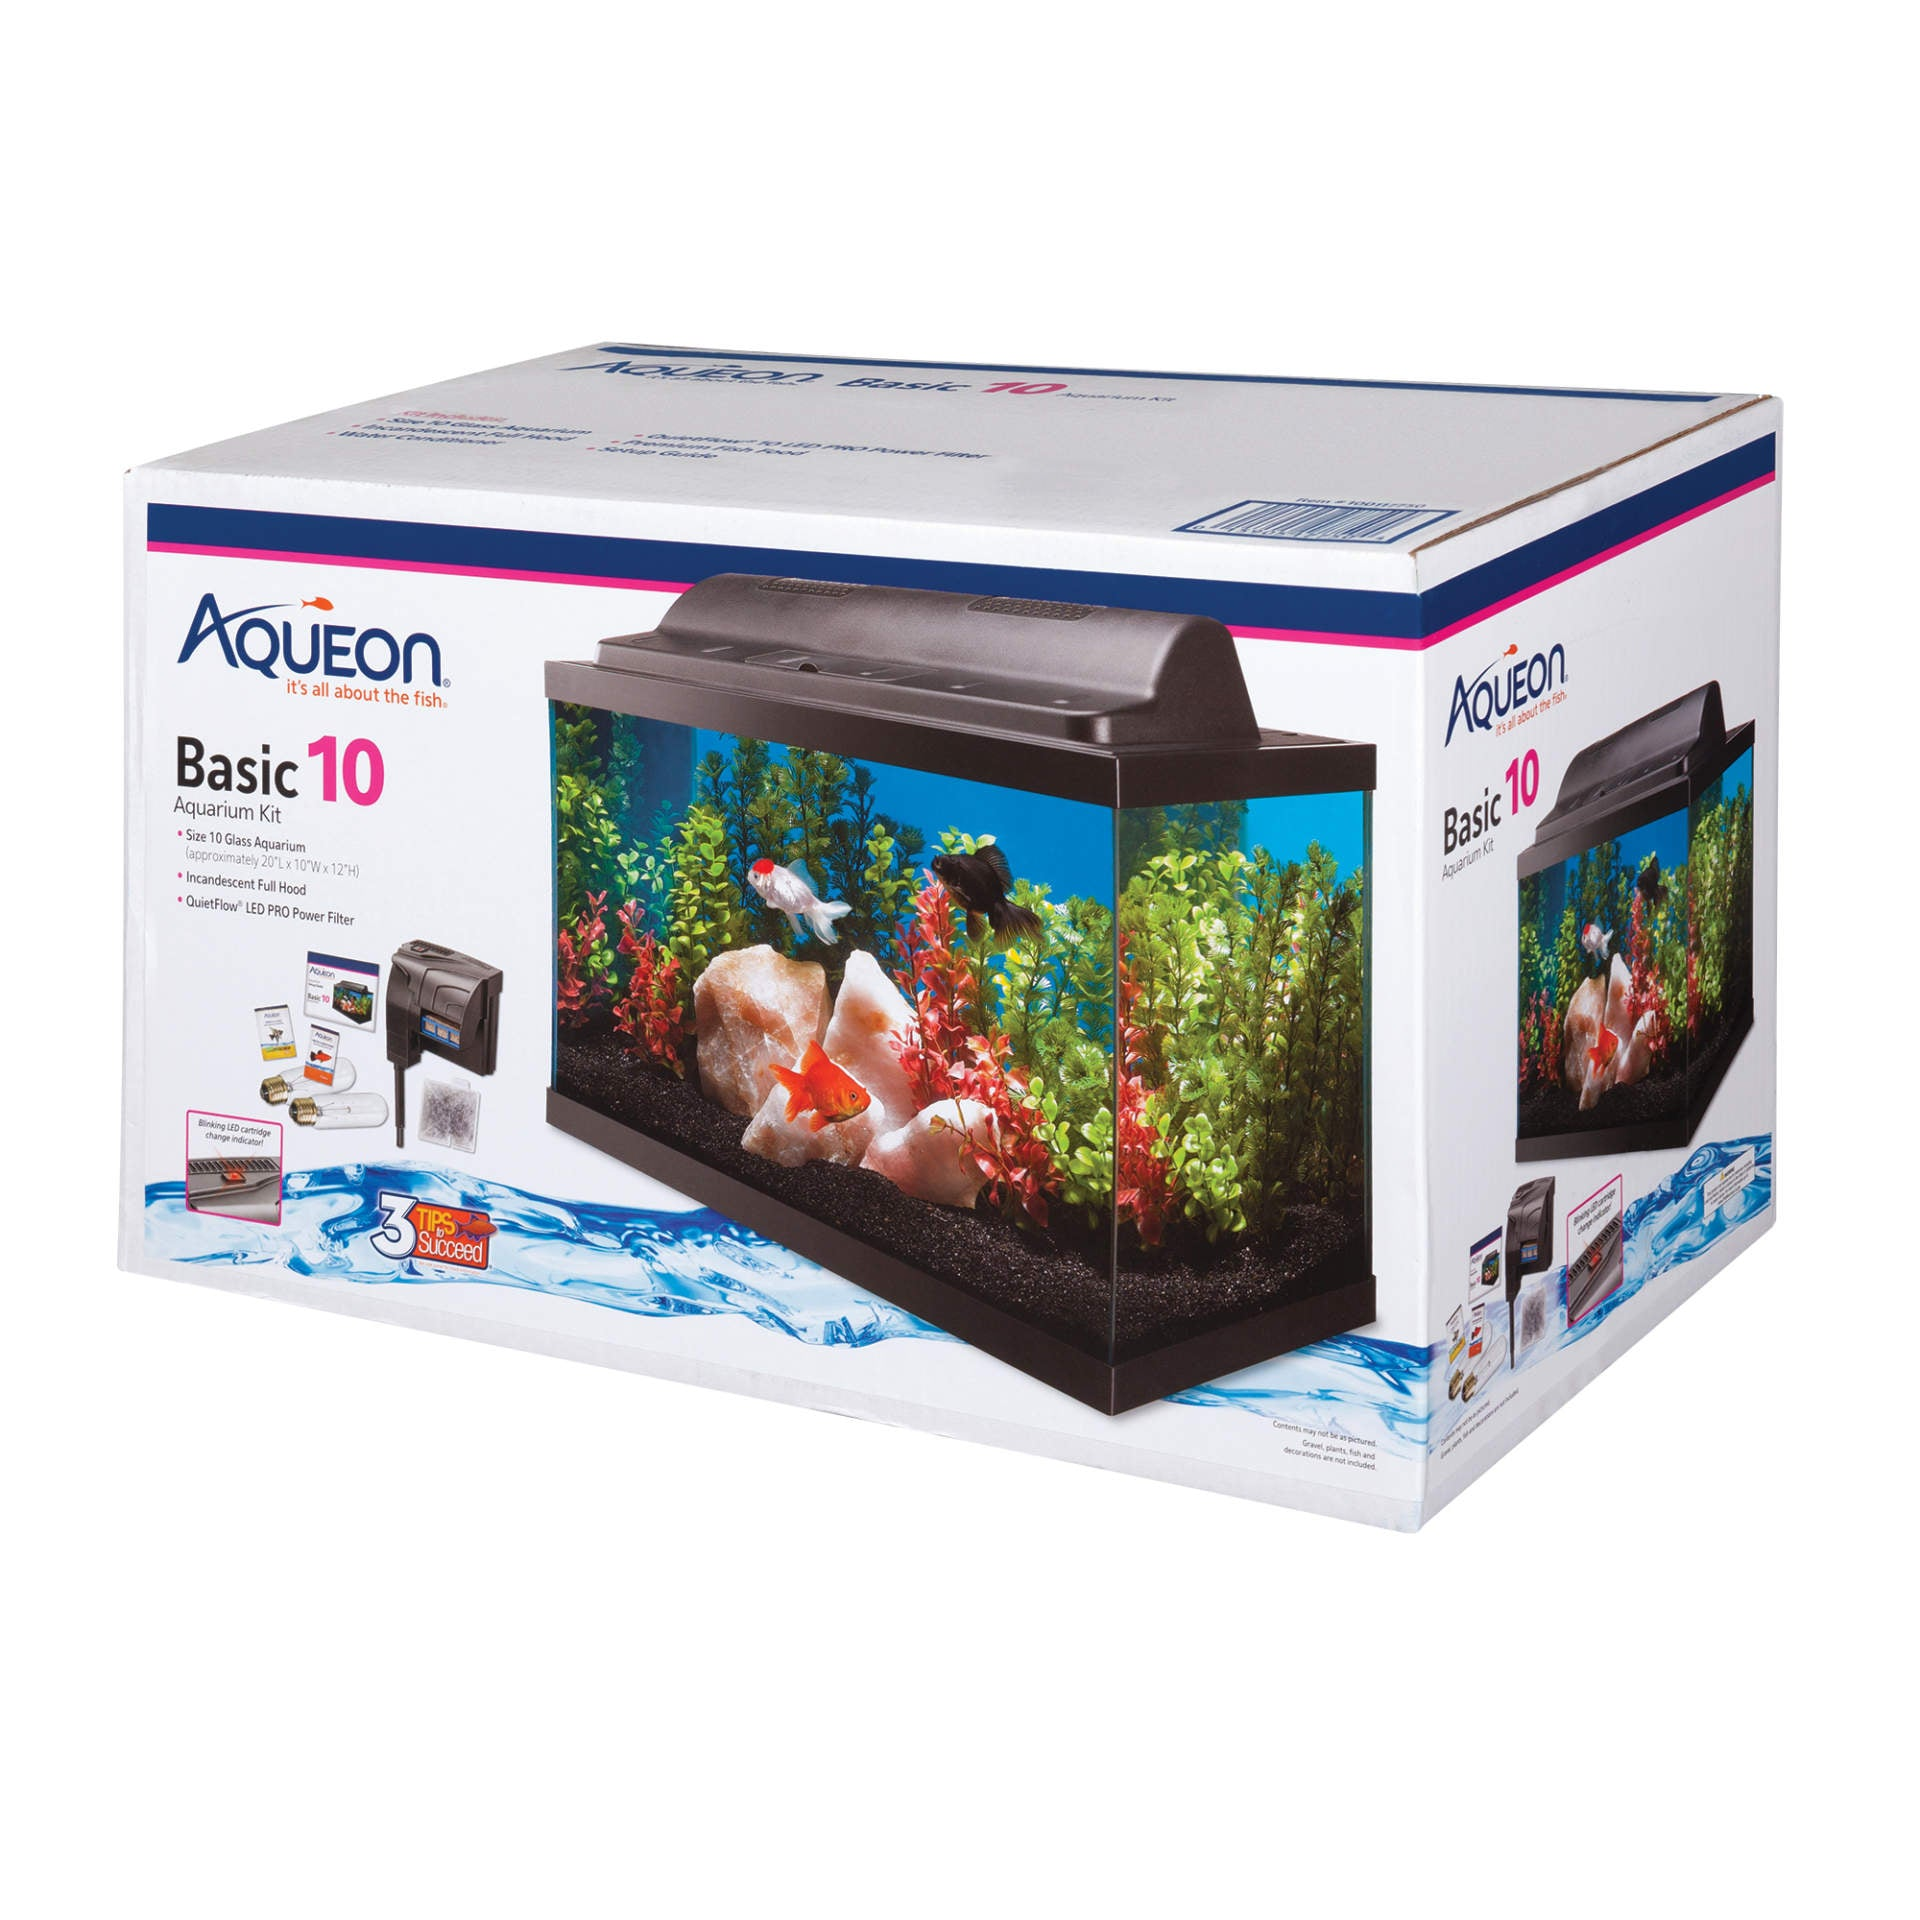 Aqueon 10 gallon Basic Aquarium Kit 20x10x12